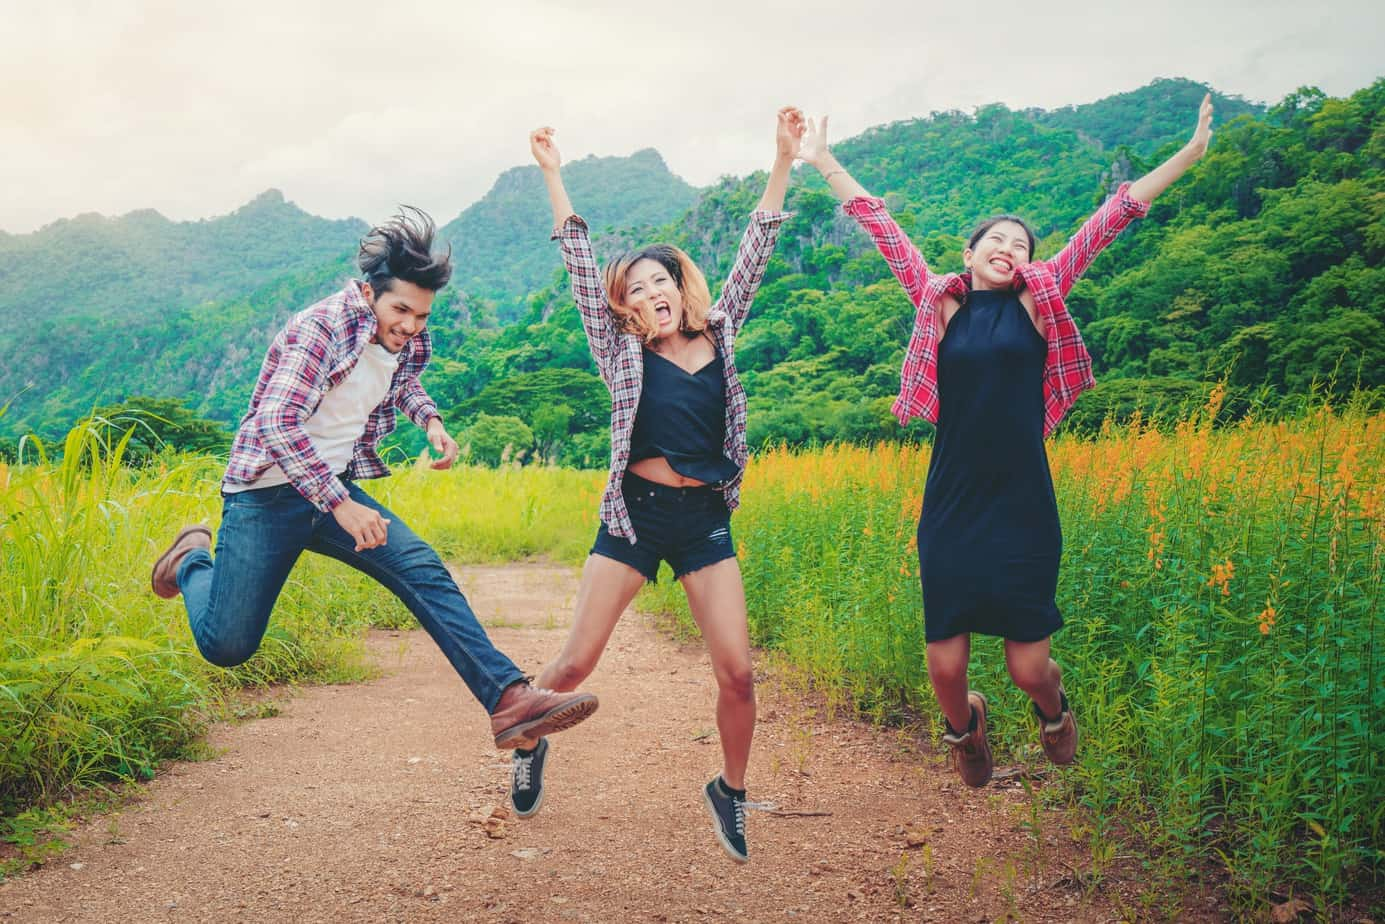 Group of happy young people jumping in the air while traveling in mountain and nature trail.